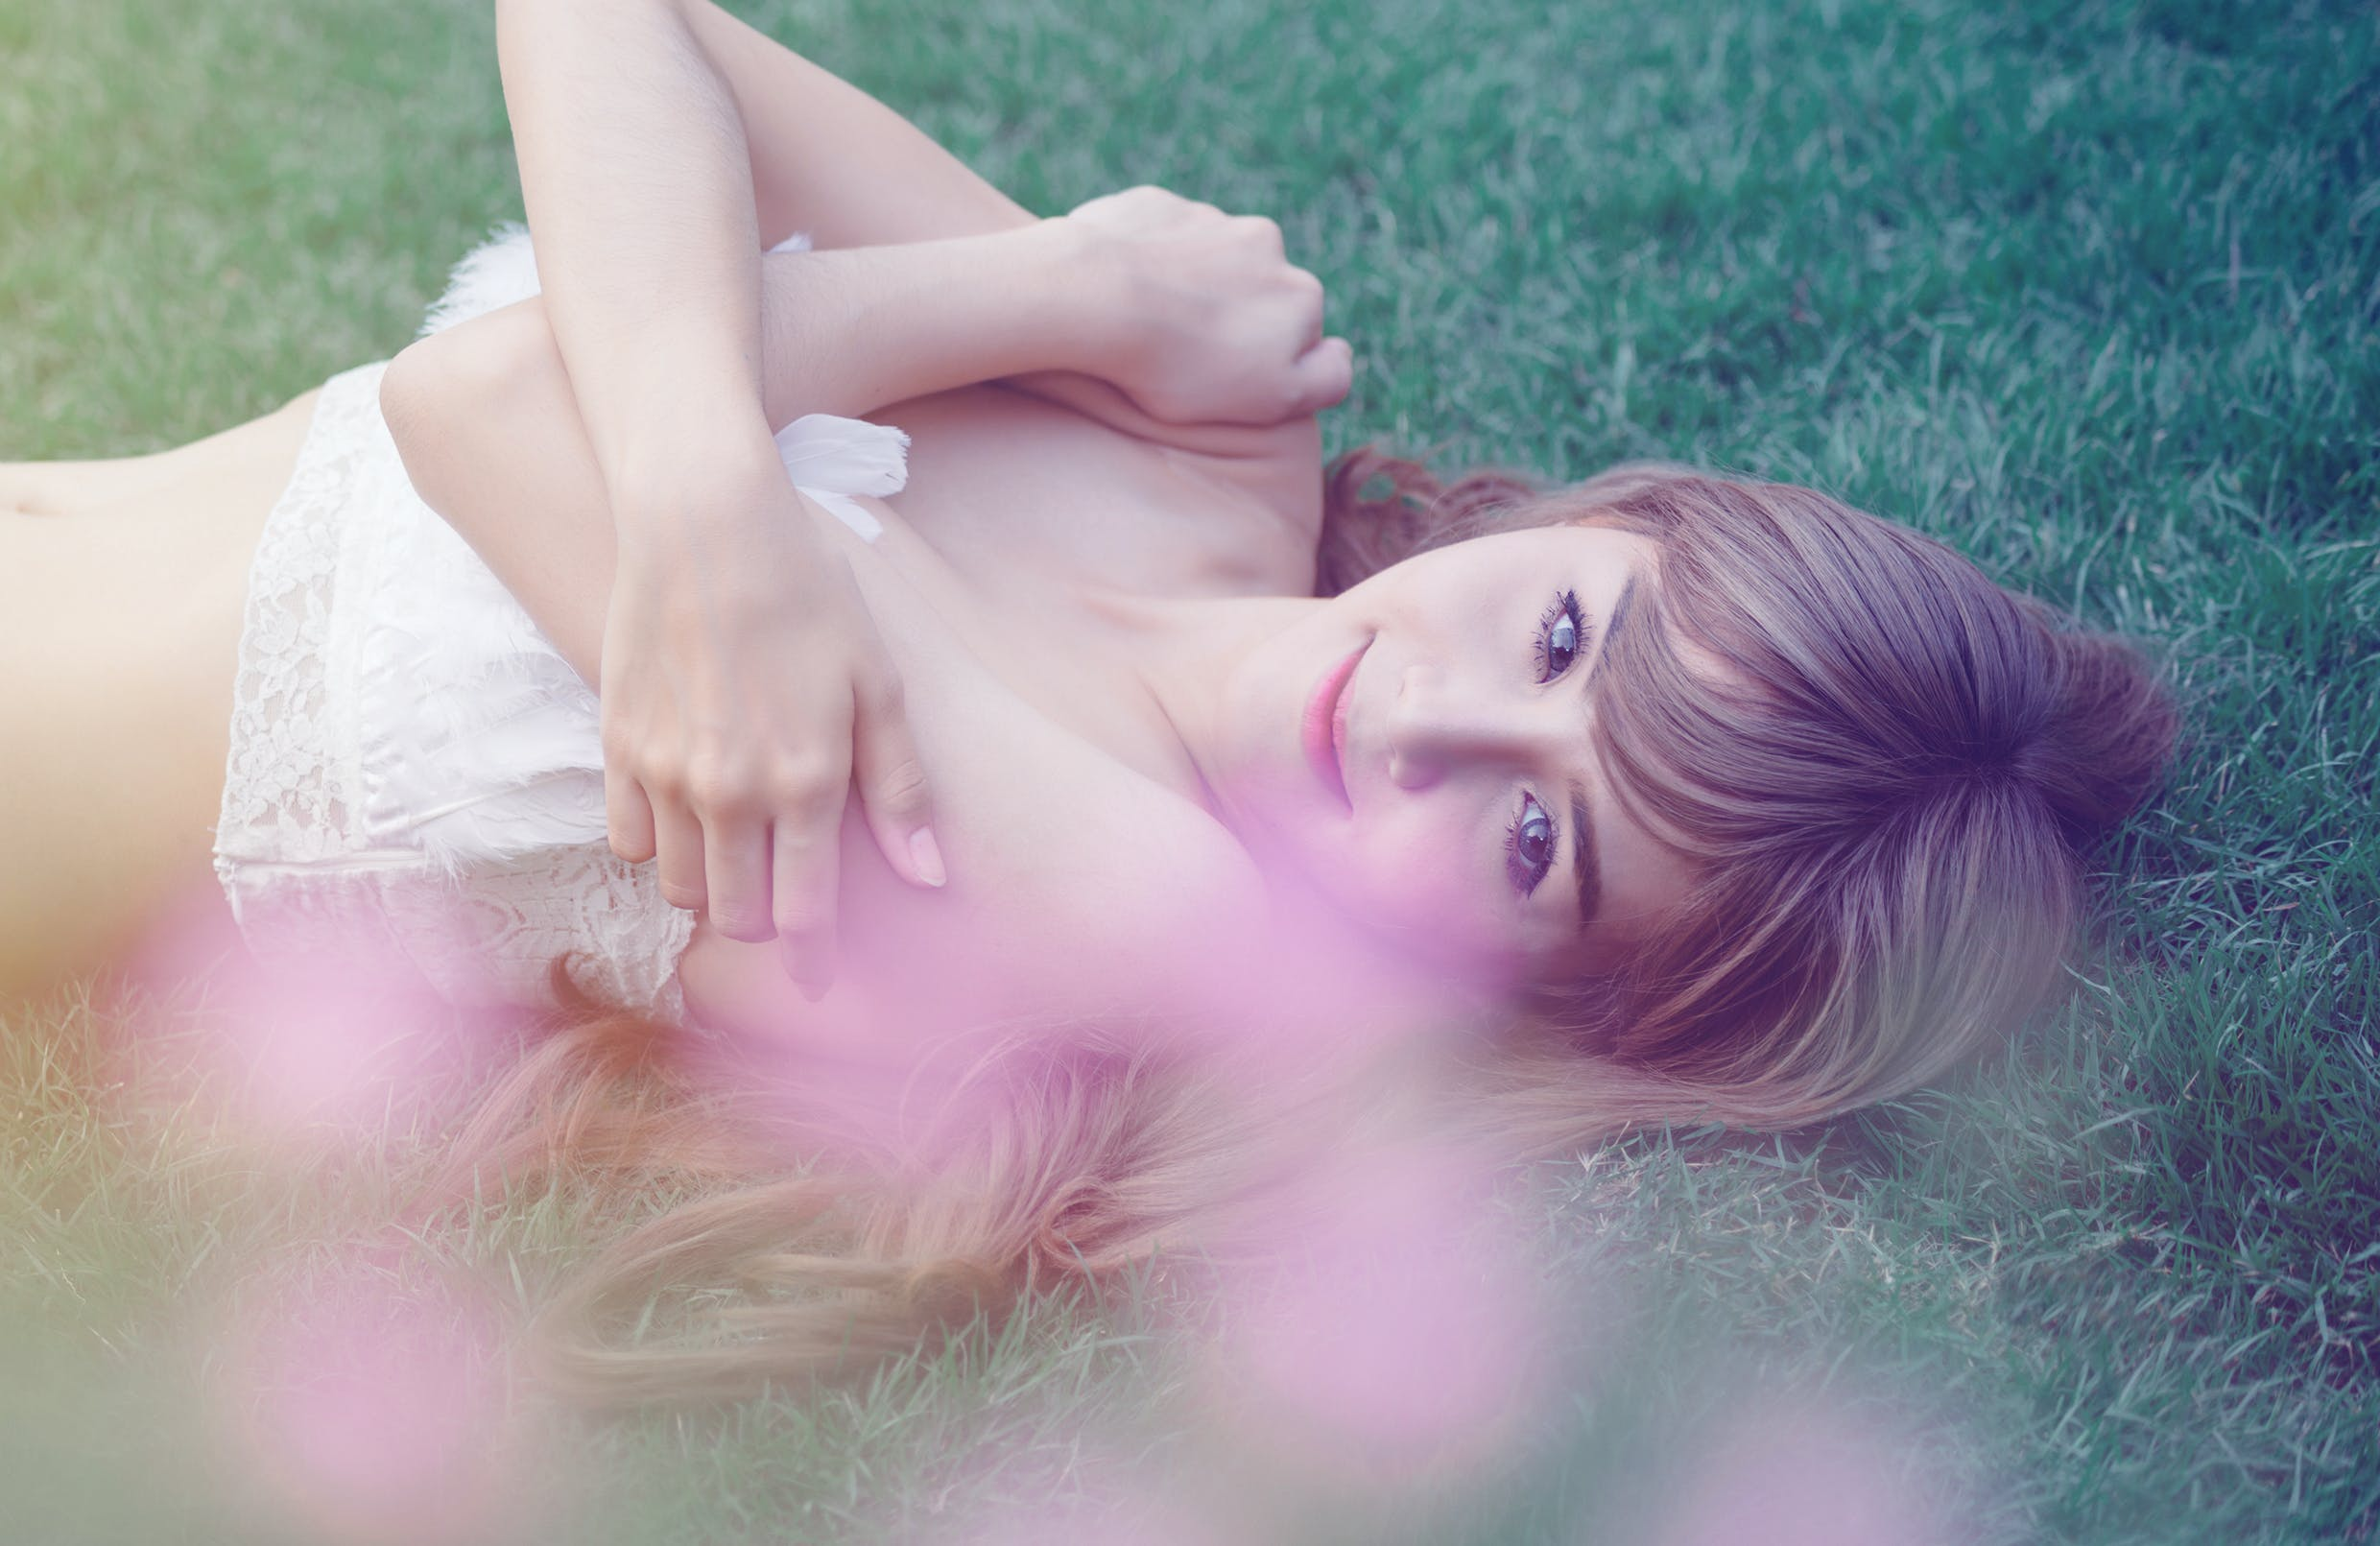 Photo of a Woman Lying on Green Wearing White Top